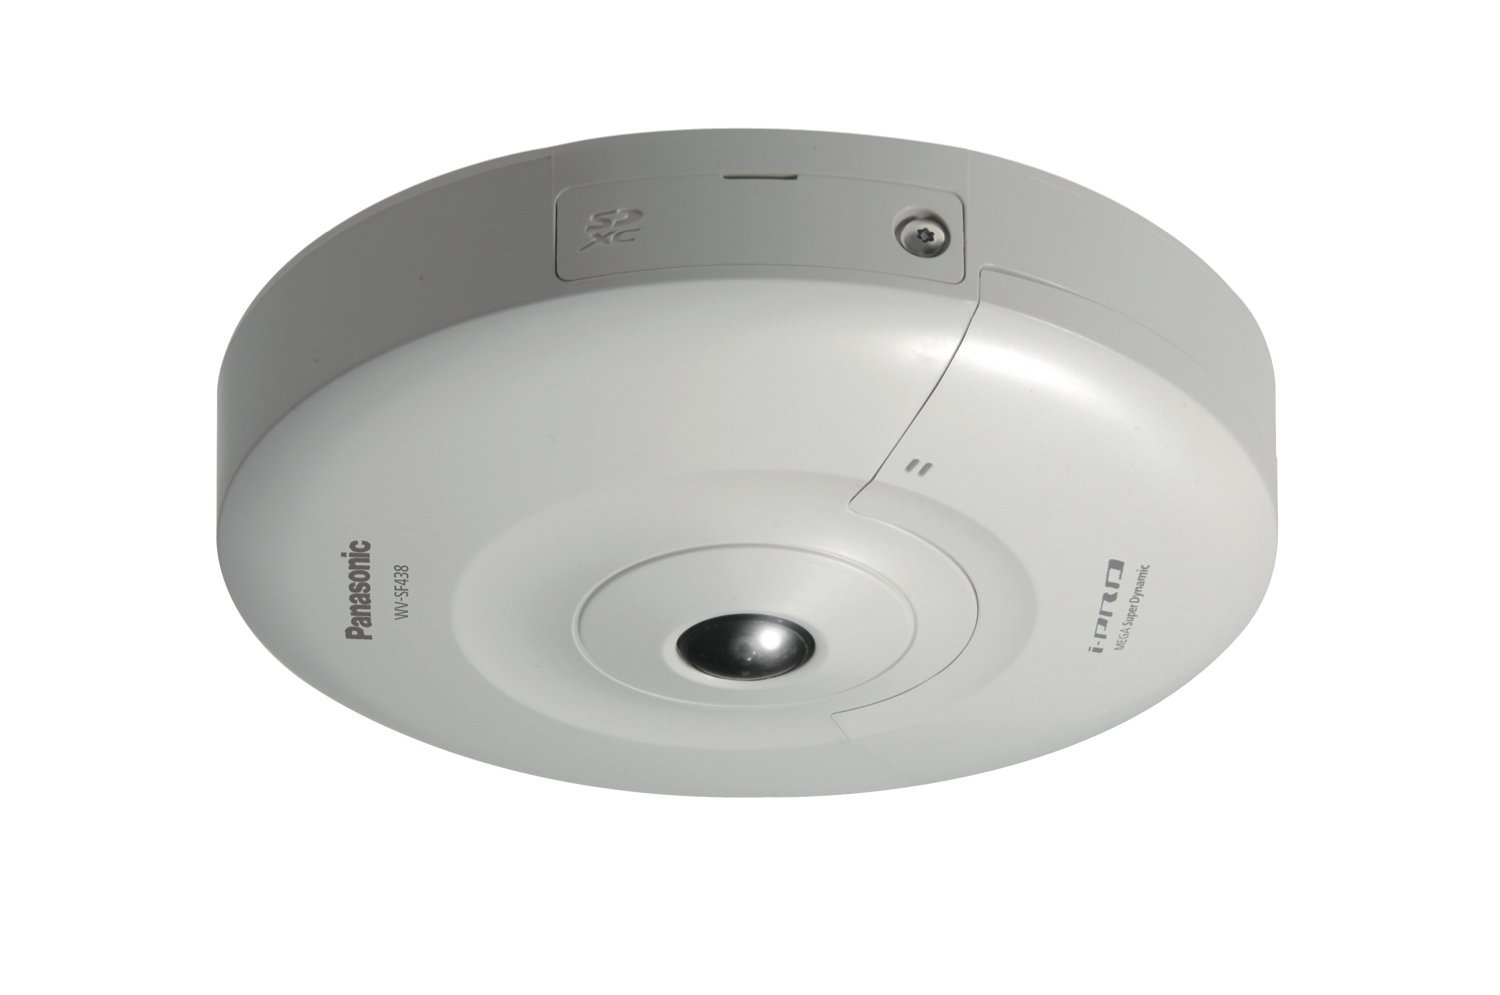 Panasonic WVSF438 360 Degree Super Dynamic Indoor Network Dome Camera